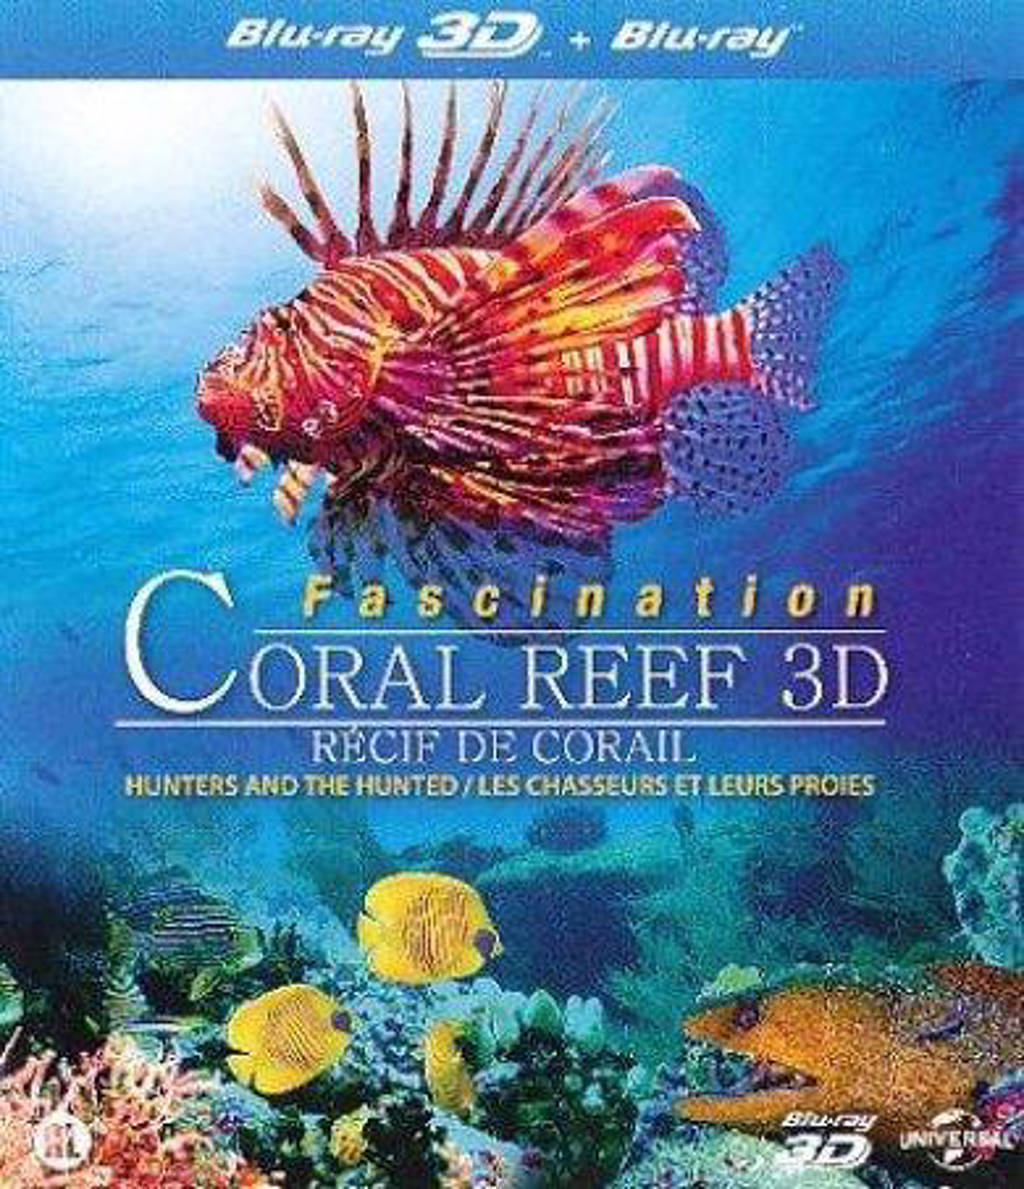 Coral reef - Hunters and the hunted (3D) (Blu-ray)